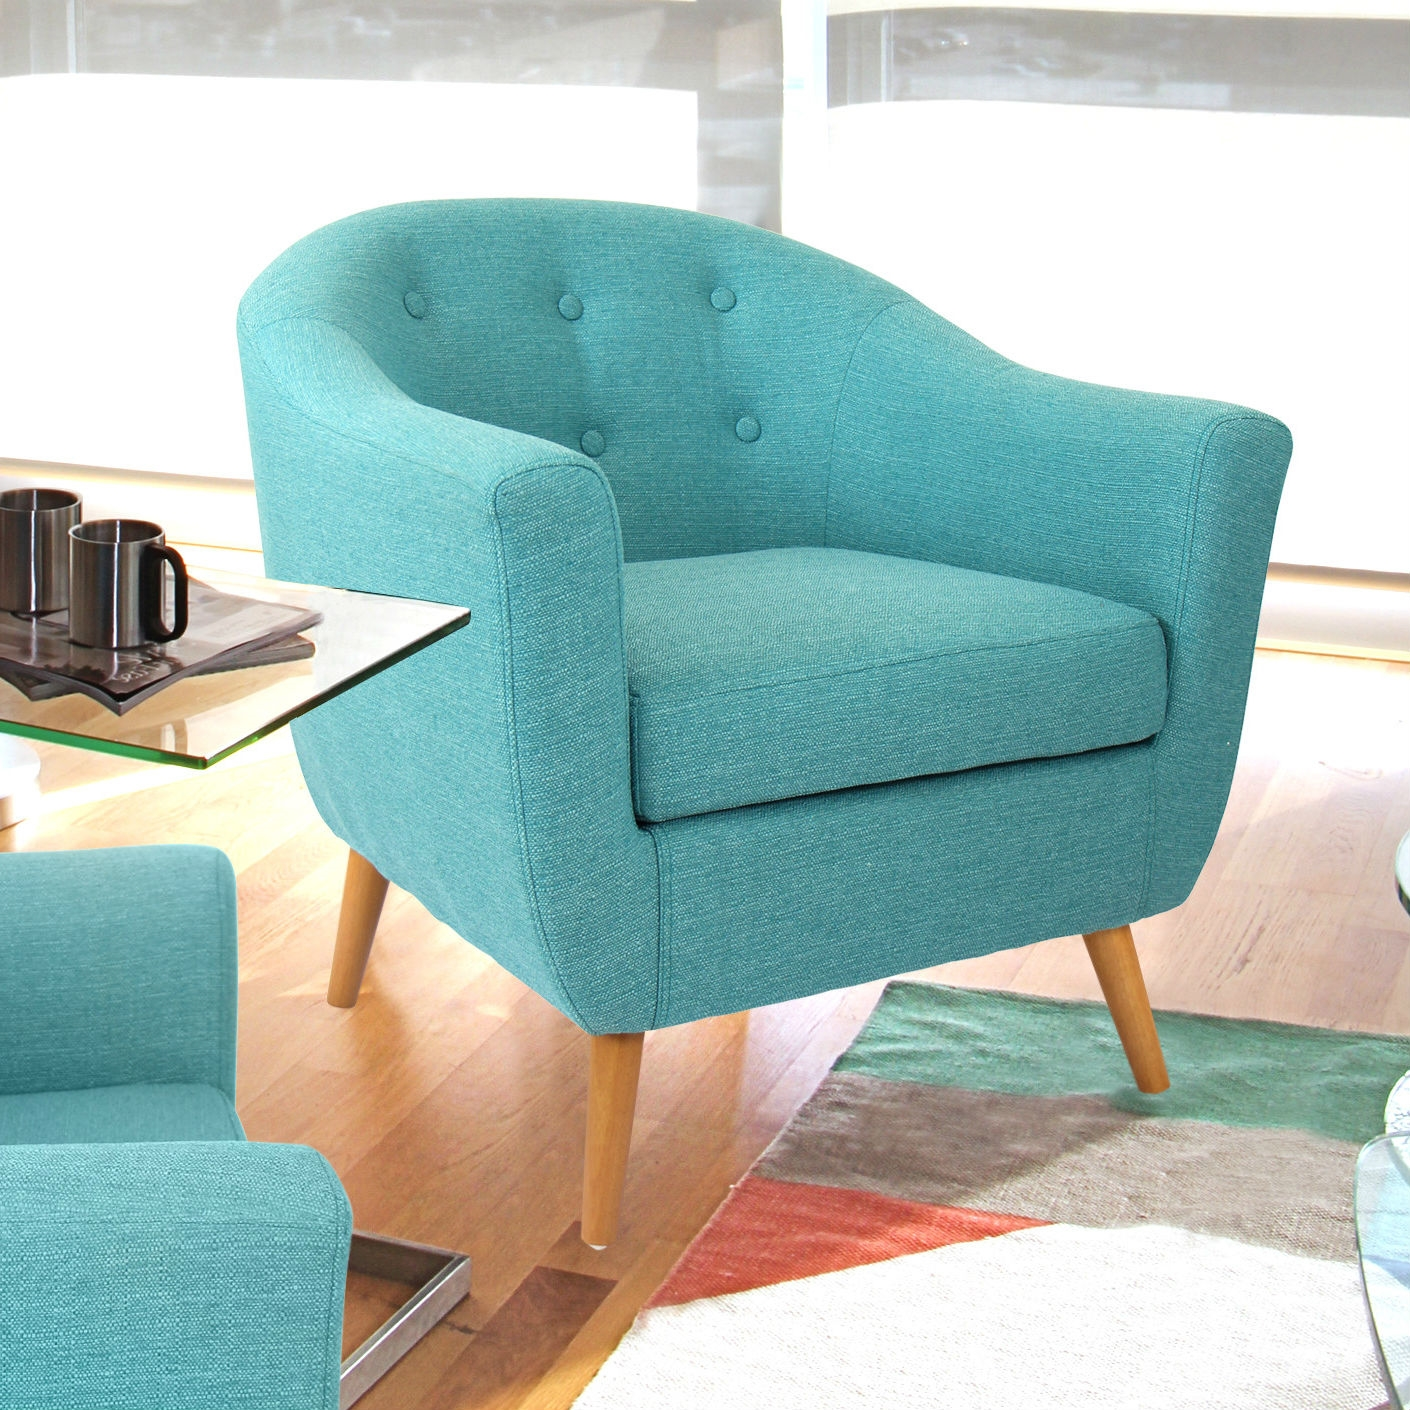 Turquoise Modern Mid Century Style Arm Chair with Solid Wood Legs